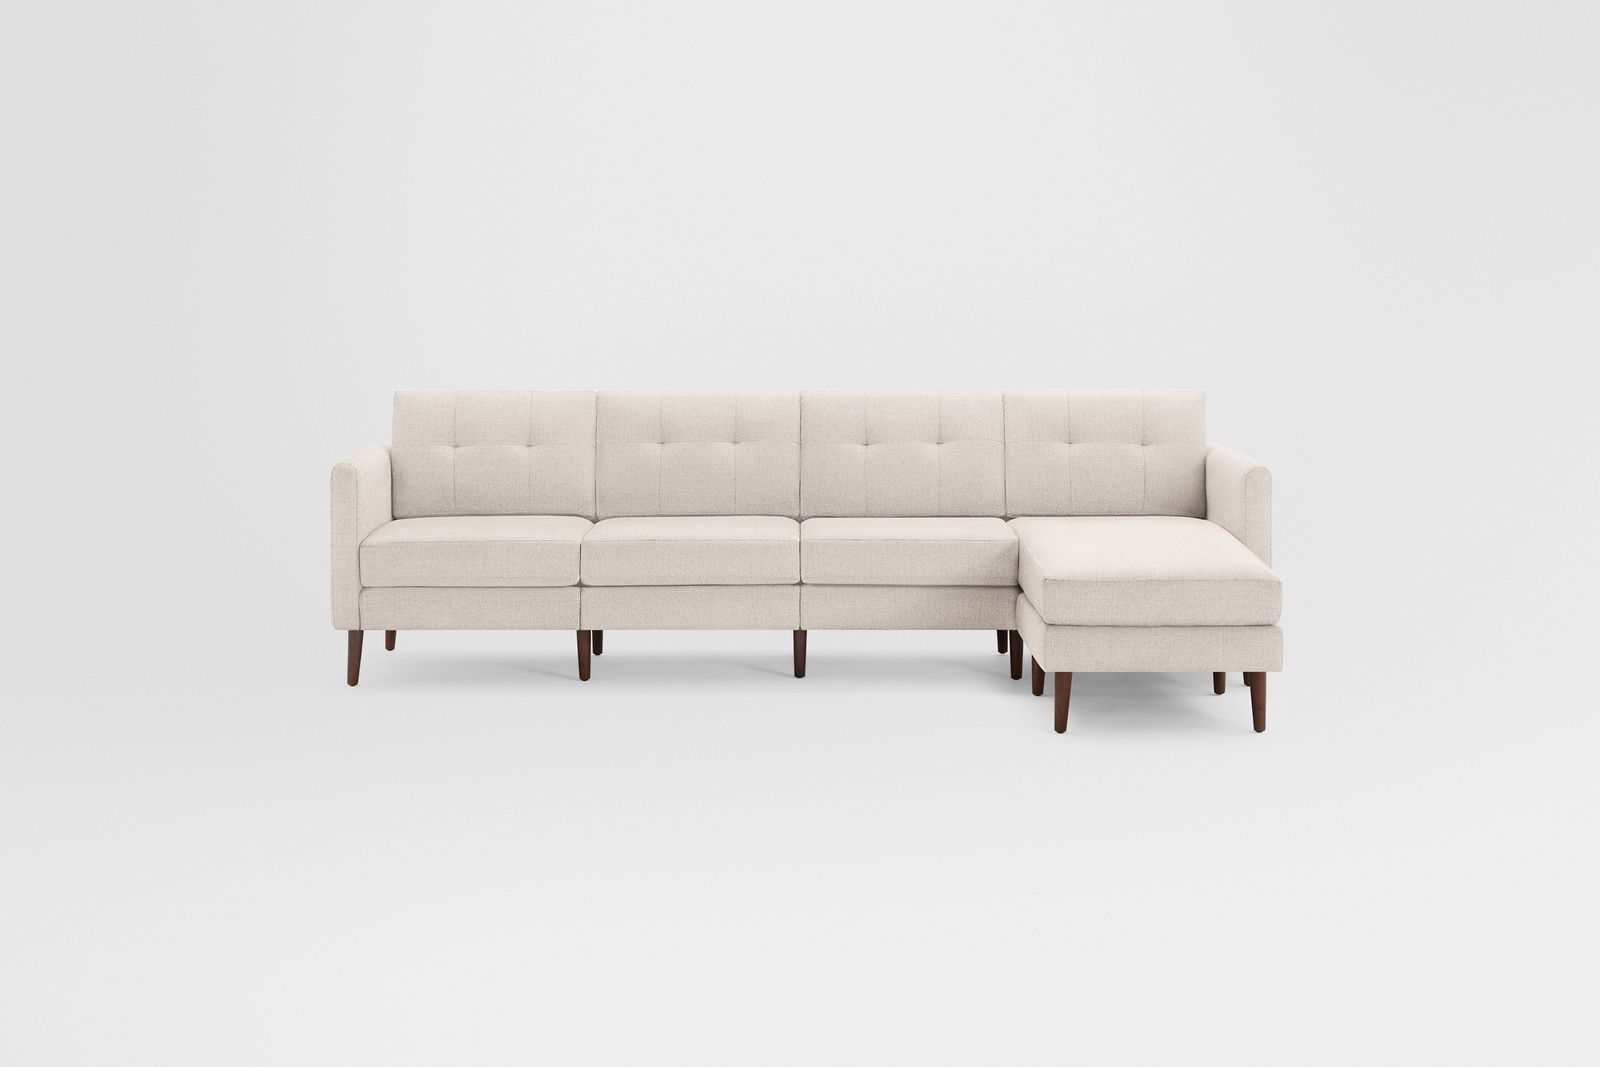 Arch Nomad King Sectional Family Room Sofa Sectional Long Sofa